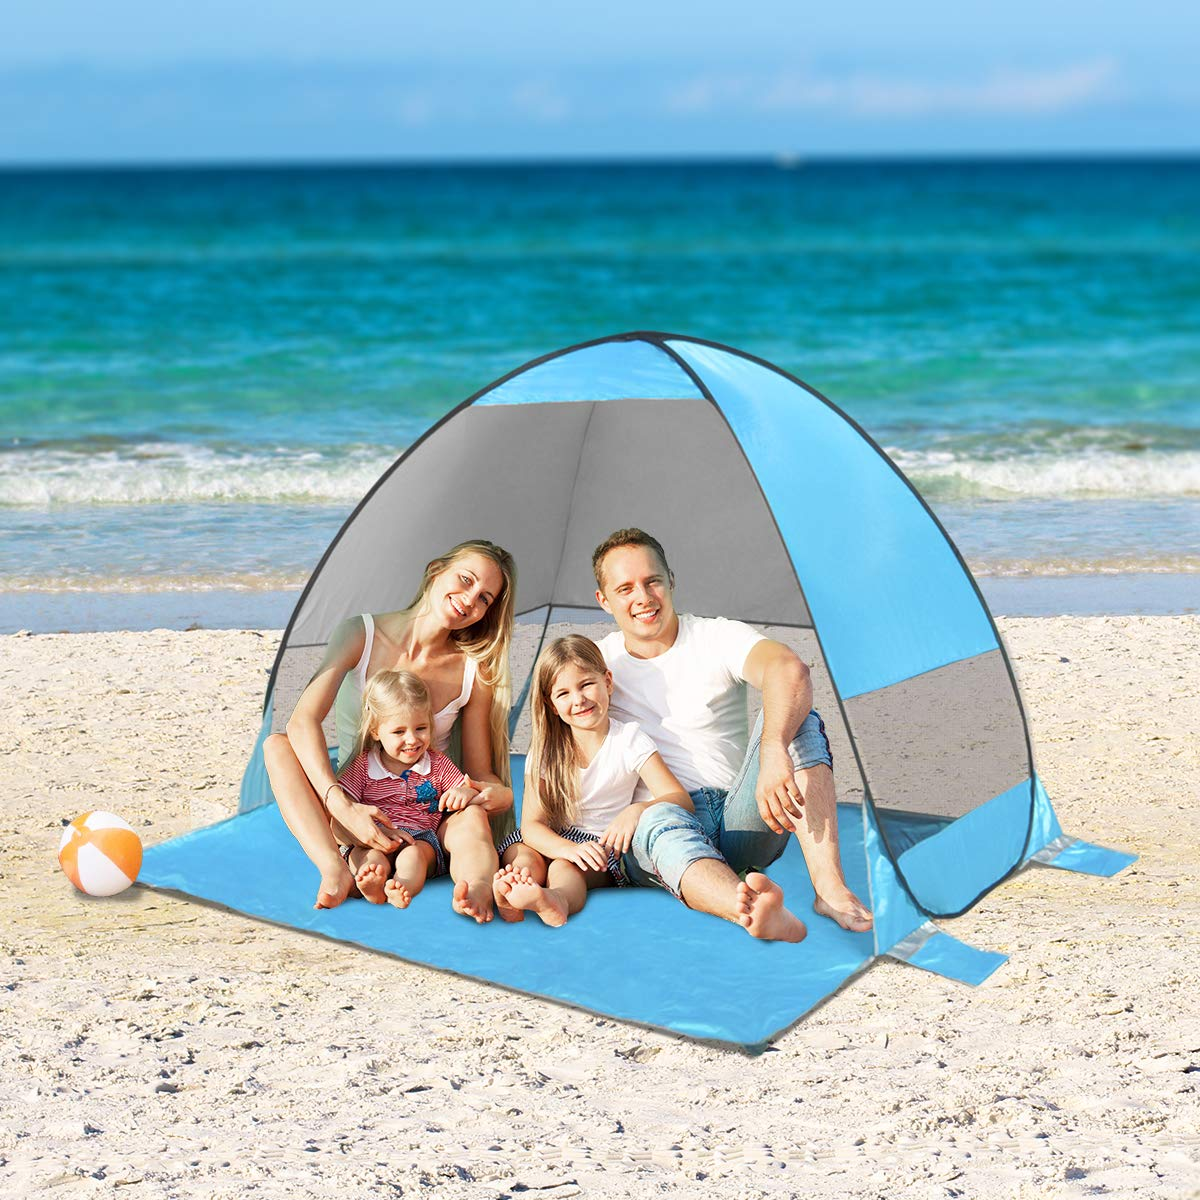 SLB Pop Up Zelt, Instant Automatische Pop Up Beach Zelt, blau